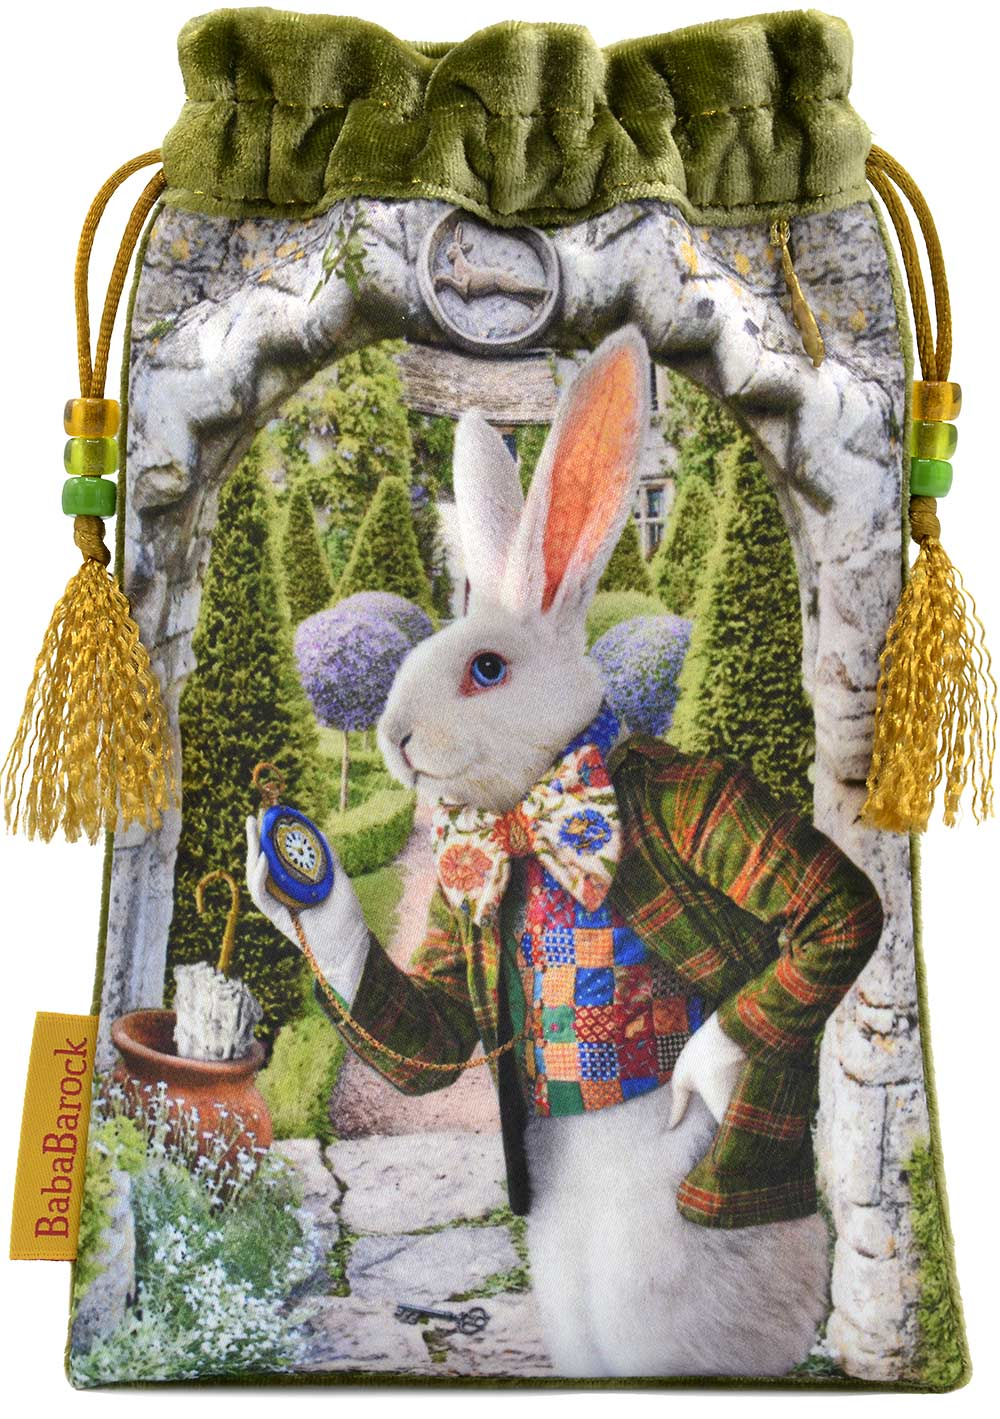 Tarotbeutel, Tarotkarten with The White Rabbit from The Alice Tarot. Silk velvet tarot bag with print of The White Rabbit